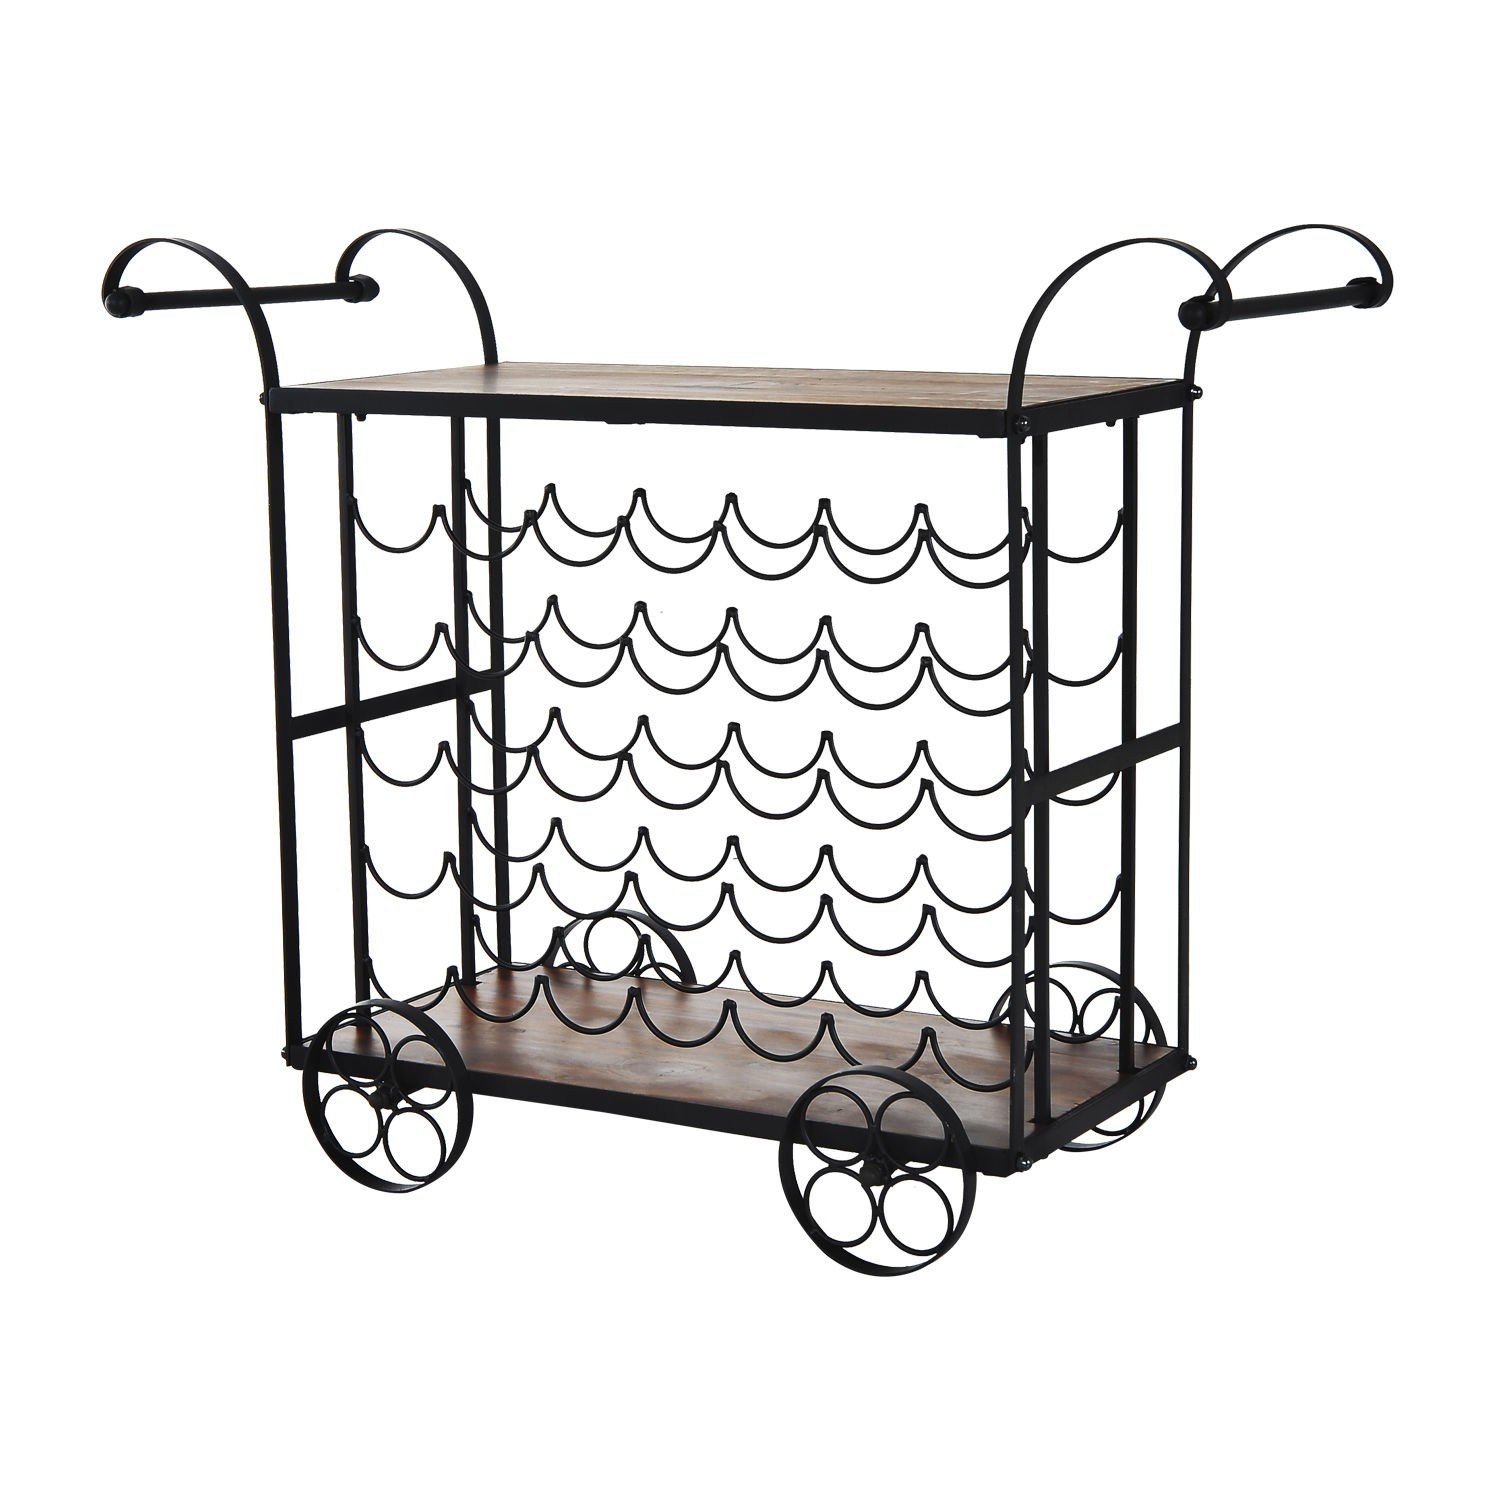 Steel - Wood Rolling Kitchen Wine Rack Trolley Cart 35 Bottle